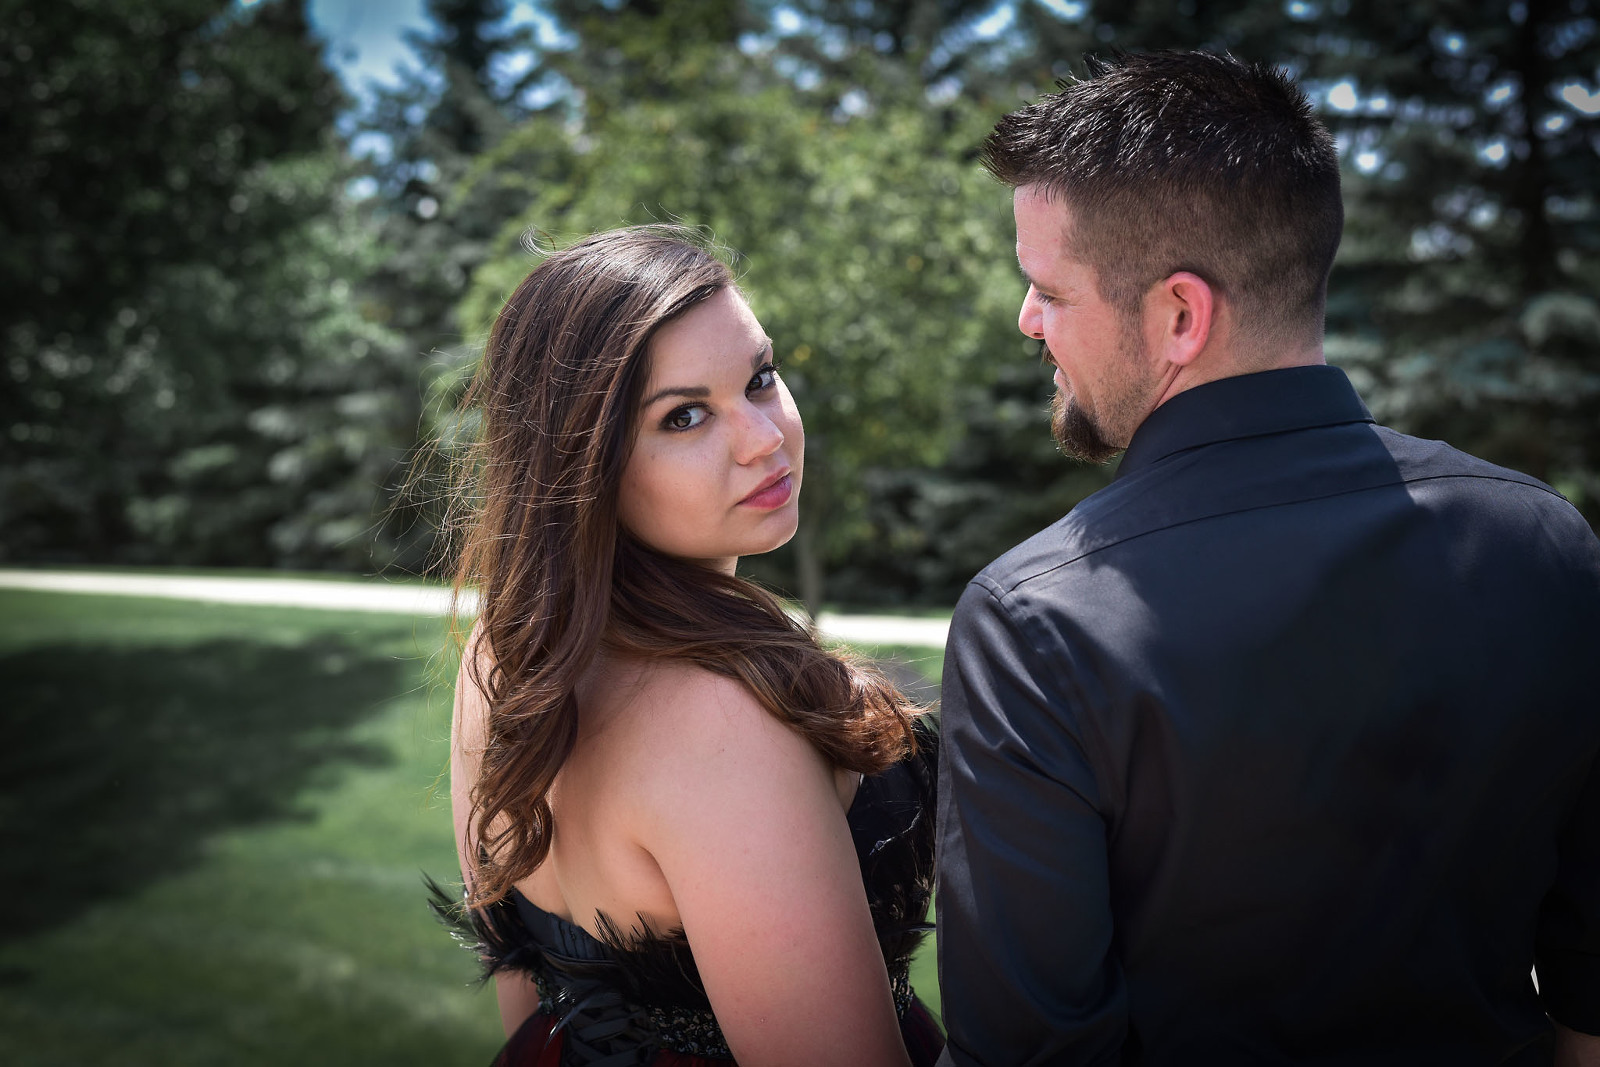 Couple embracing in formal wear during outdoor engagement session in Auburn, Indiana by Kasey Wallace Photography